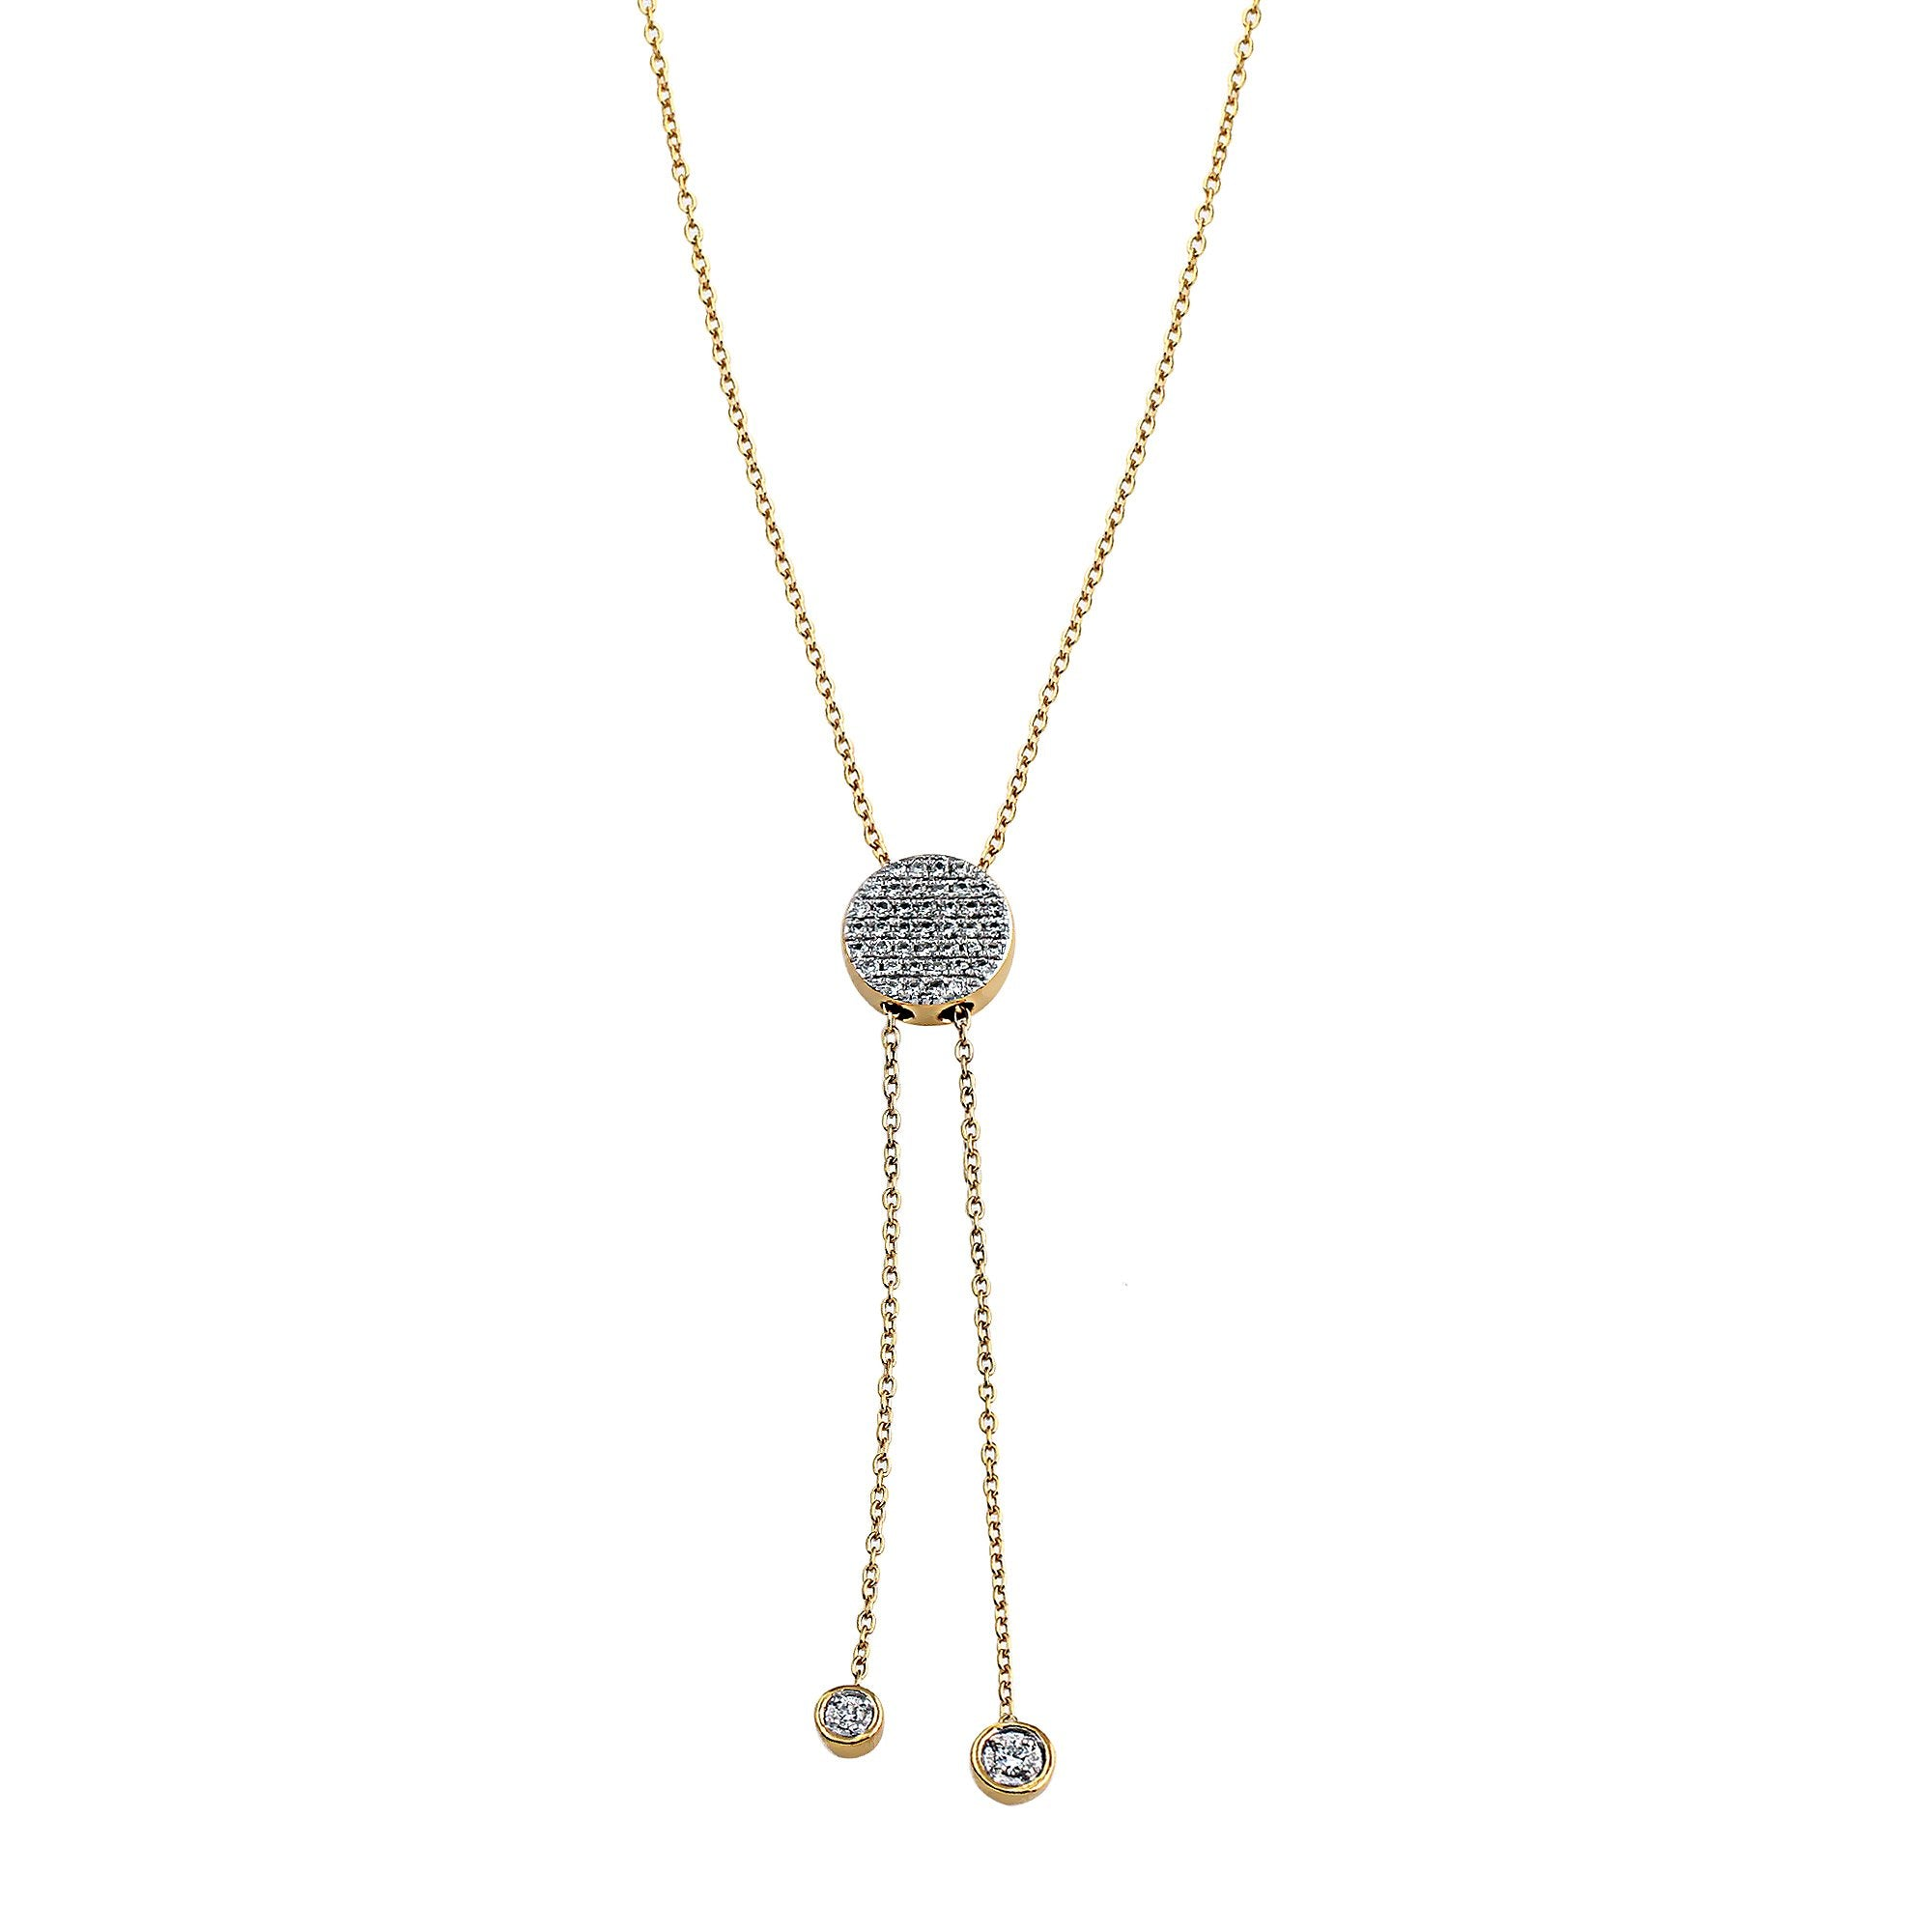 Blaze Lariat Lab-Grown Diamond Necklace - 14k Gold Over Sterling Silver (.33 ct. tw.)